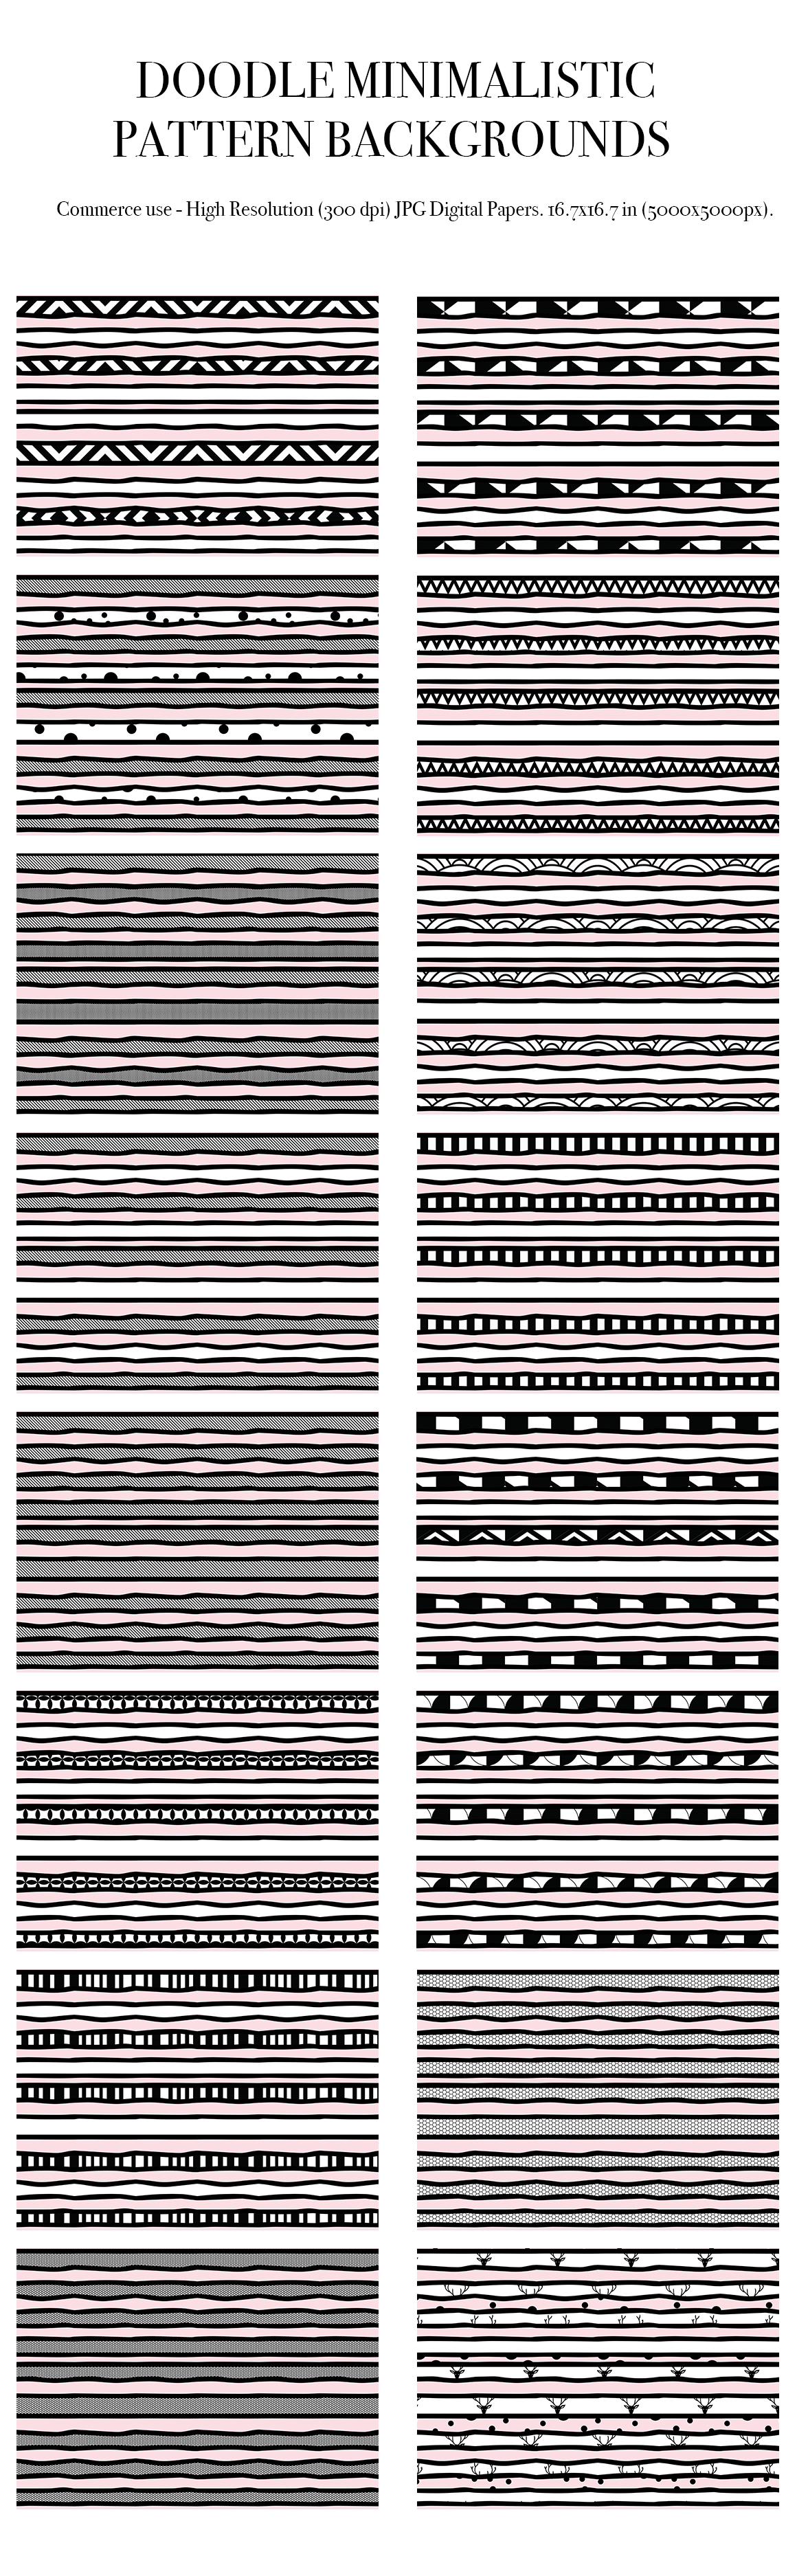 100 Doodle minimalistic fabric pattern backgrounds